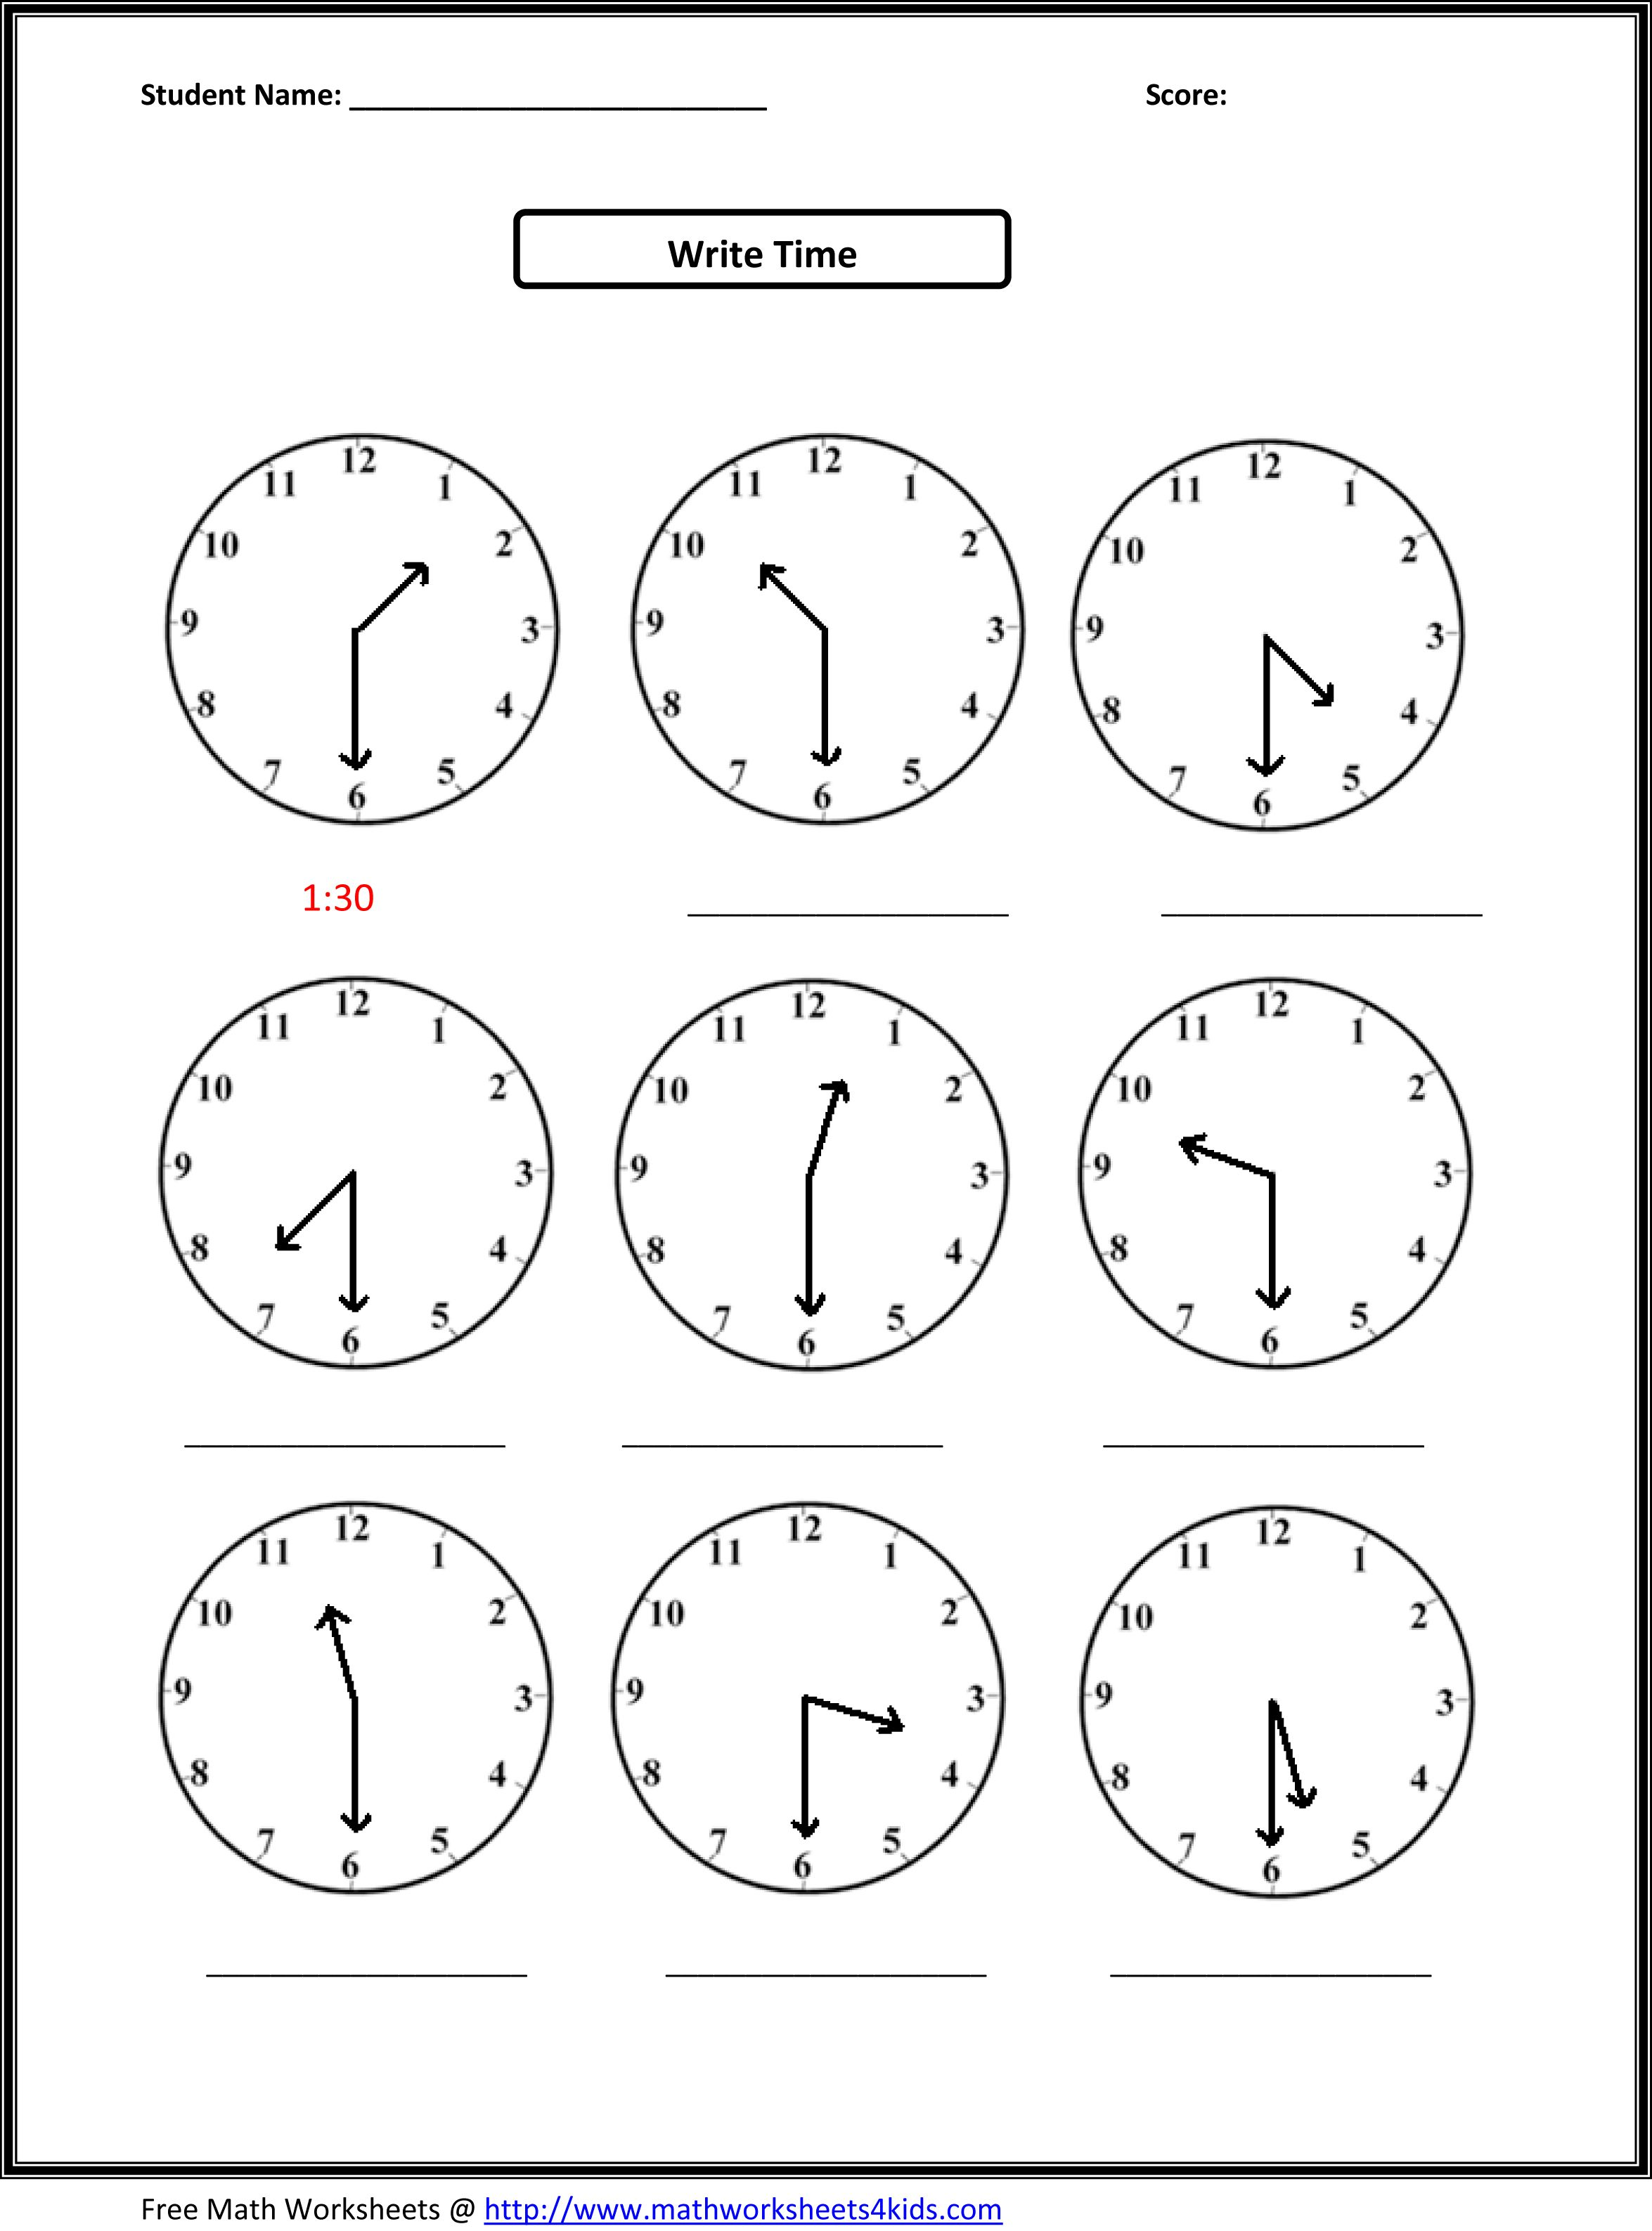 Weirdmailus  Outstanding Worksheet On Time For Grade   Reocurent With Foxy Free Printable Telling Time Worksheets Nd Grade  Reocurent With Lovely Th Grade Algebra Worksheets Also First Grade Phonics Worksheets In Addition Retirement Budget Worksheet And Th Grade Grammar Worksheets As Well As Capitalization Worksheet Additionally Life Cycle Of A Plant Worksheet From Reocurentcom With Weirdmailus  Foxy Worksheet On Time For Grade   Reocurent With Lovely Free Printable Telling Time Worksheets Nd Grade  Reocurent And Outstanding Th Grade Algebra Worksheets Also First Grade Phonics Worksheets In Addition Retirement Budget Worksheet From Reocurentcom